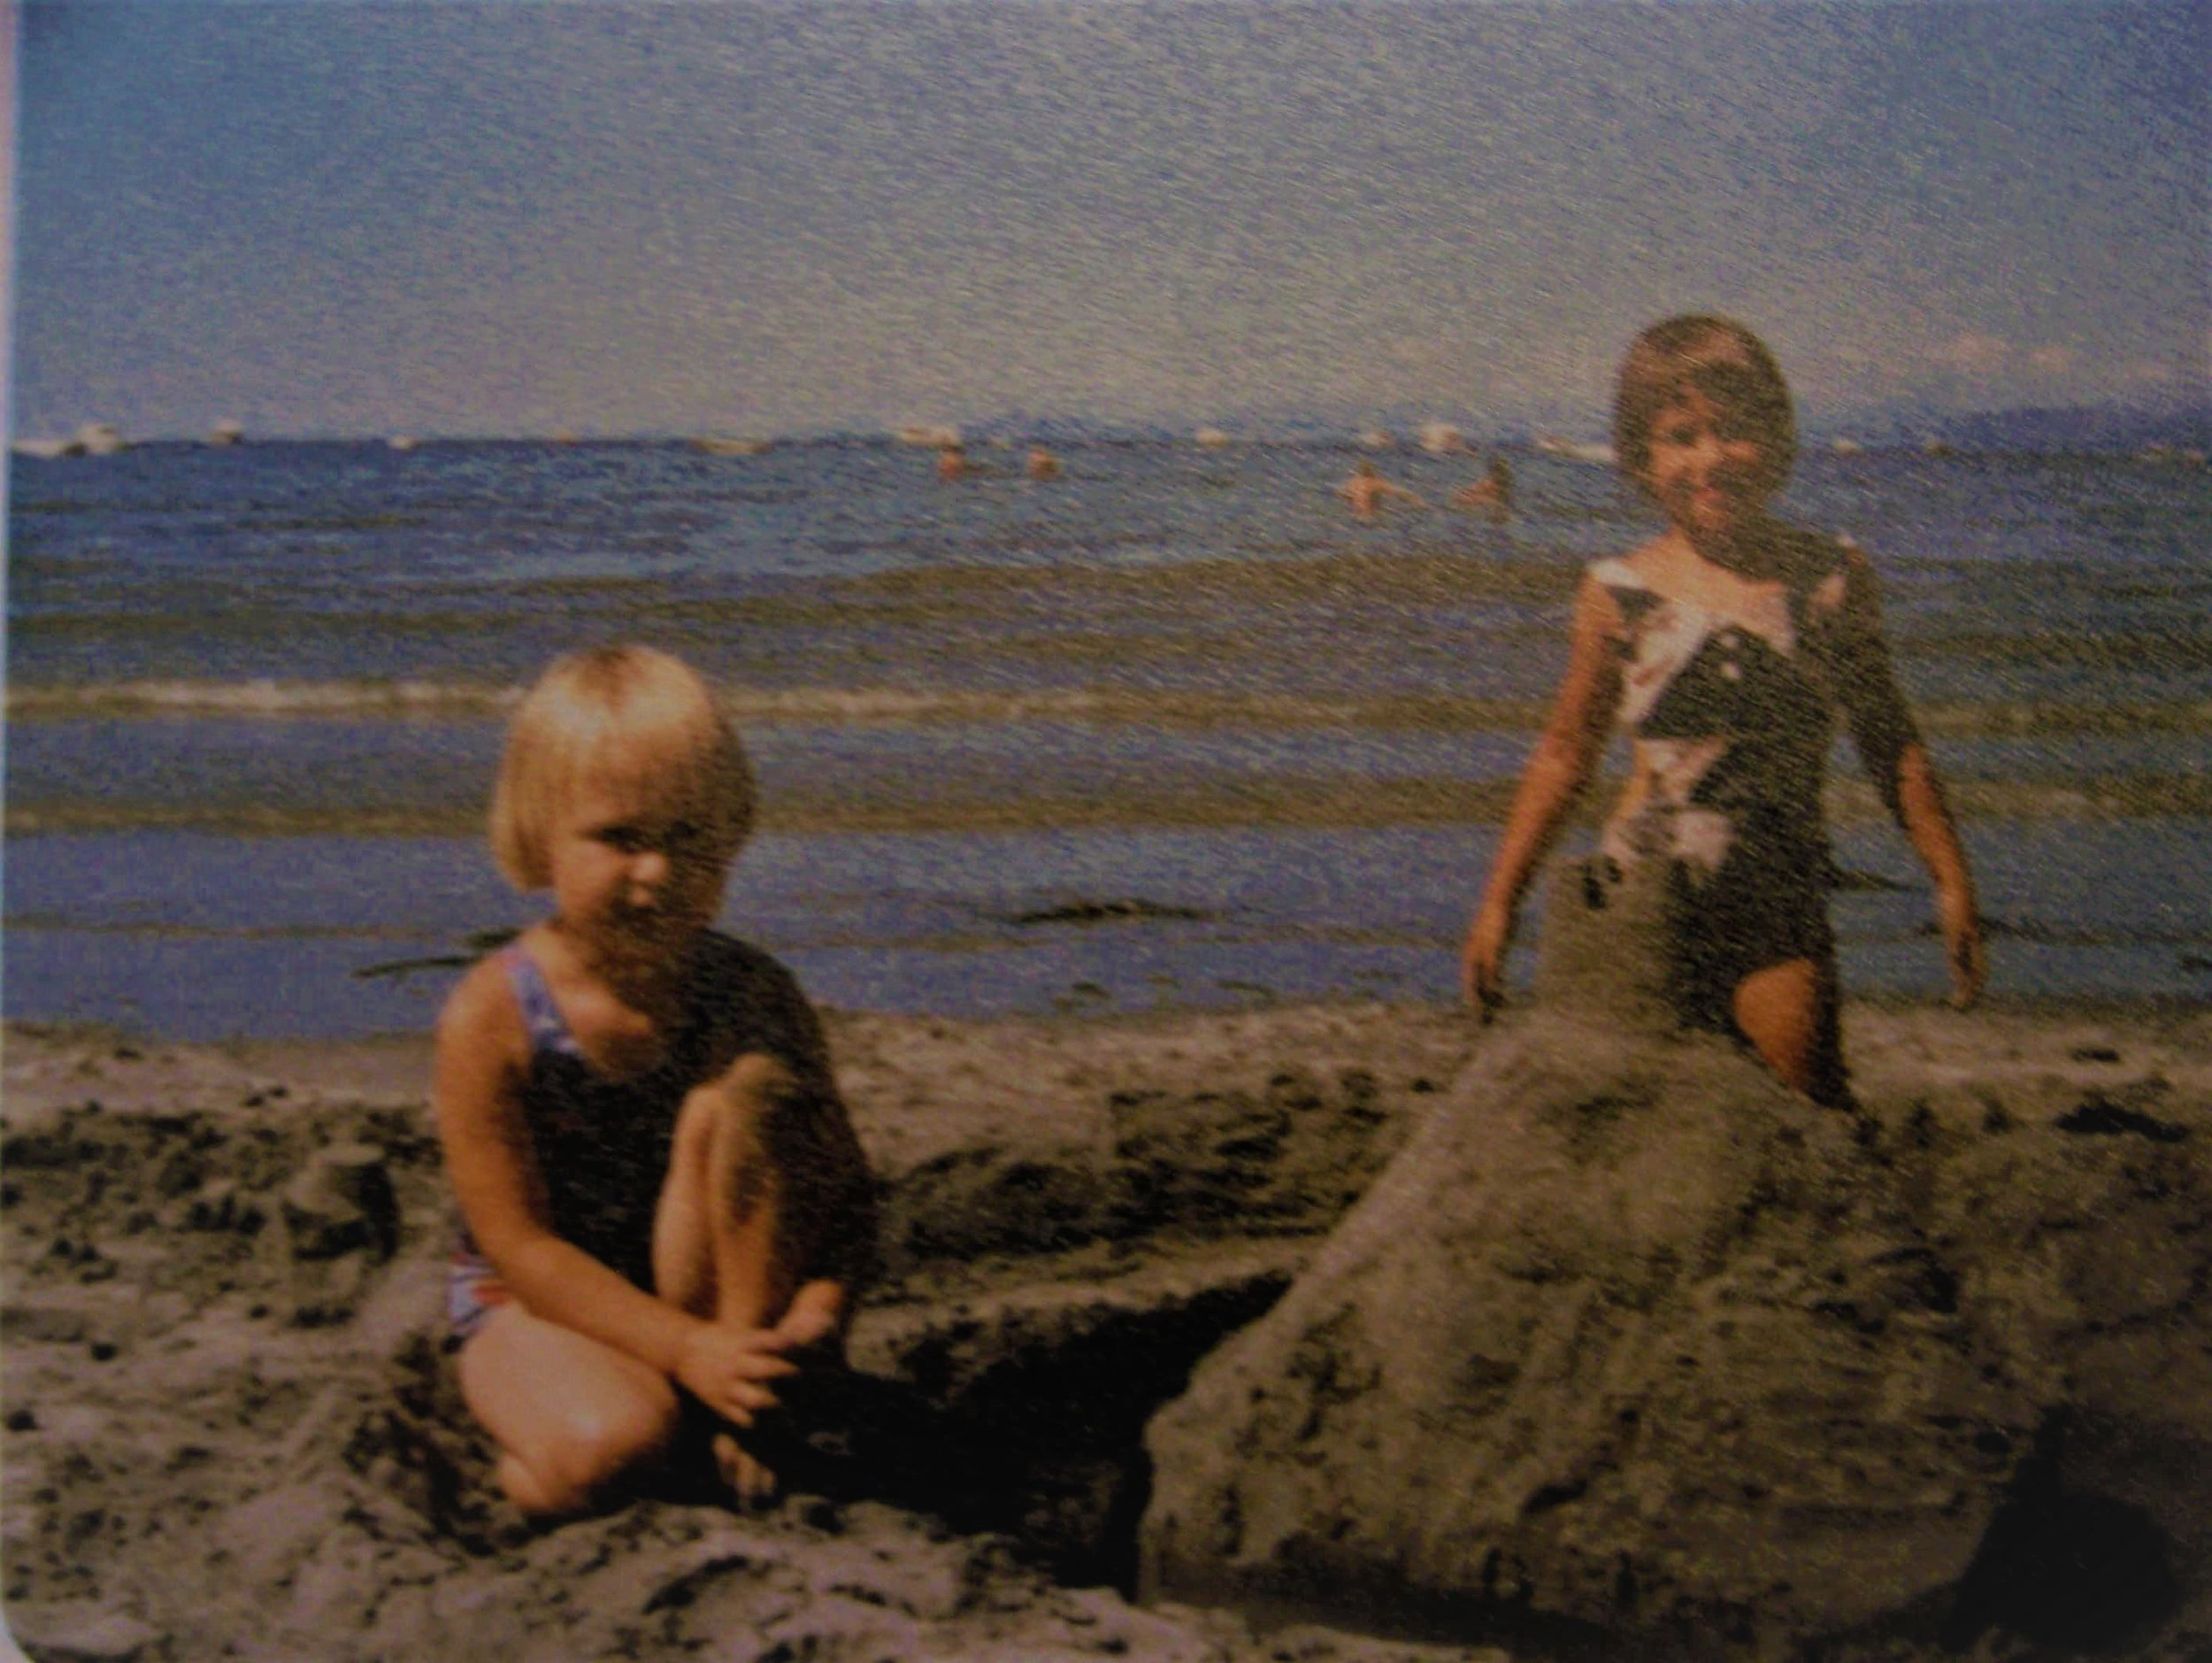 My sister and I playing on the beach near our home